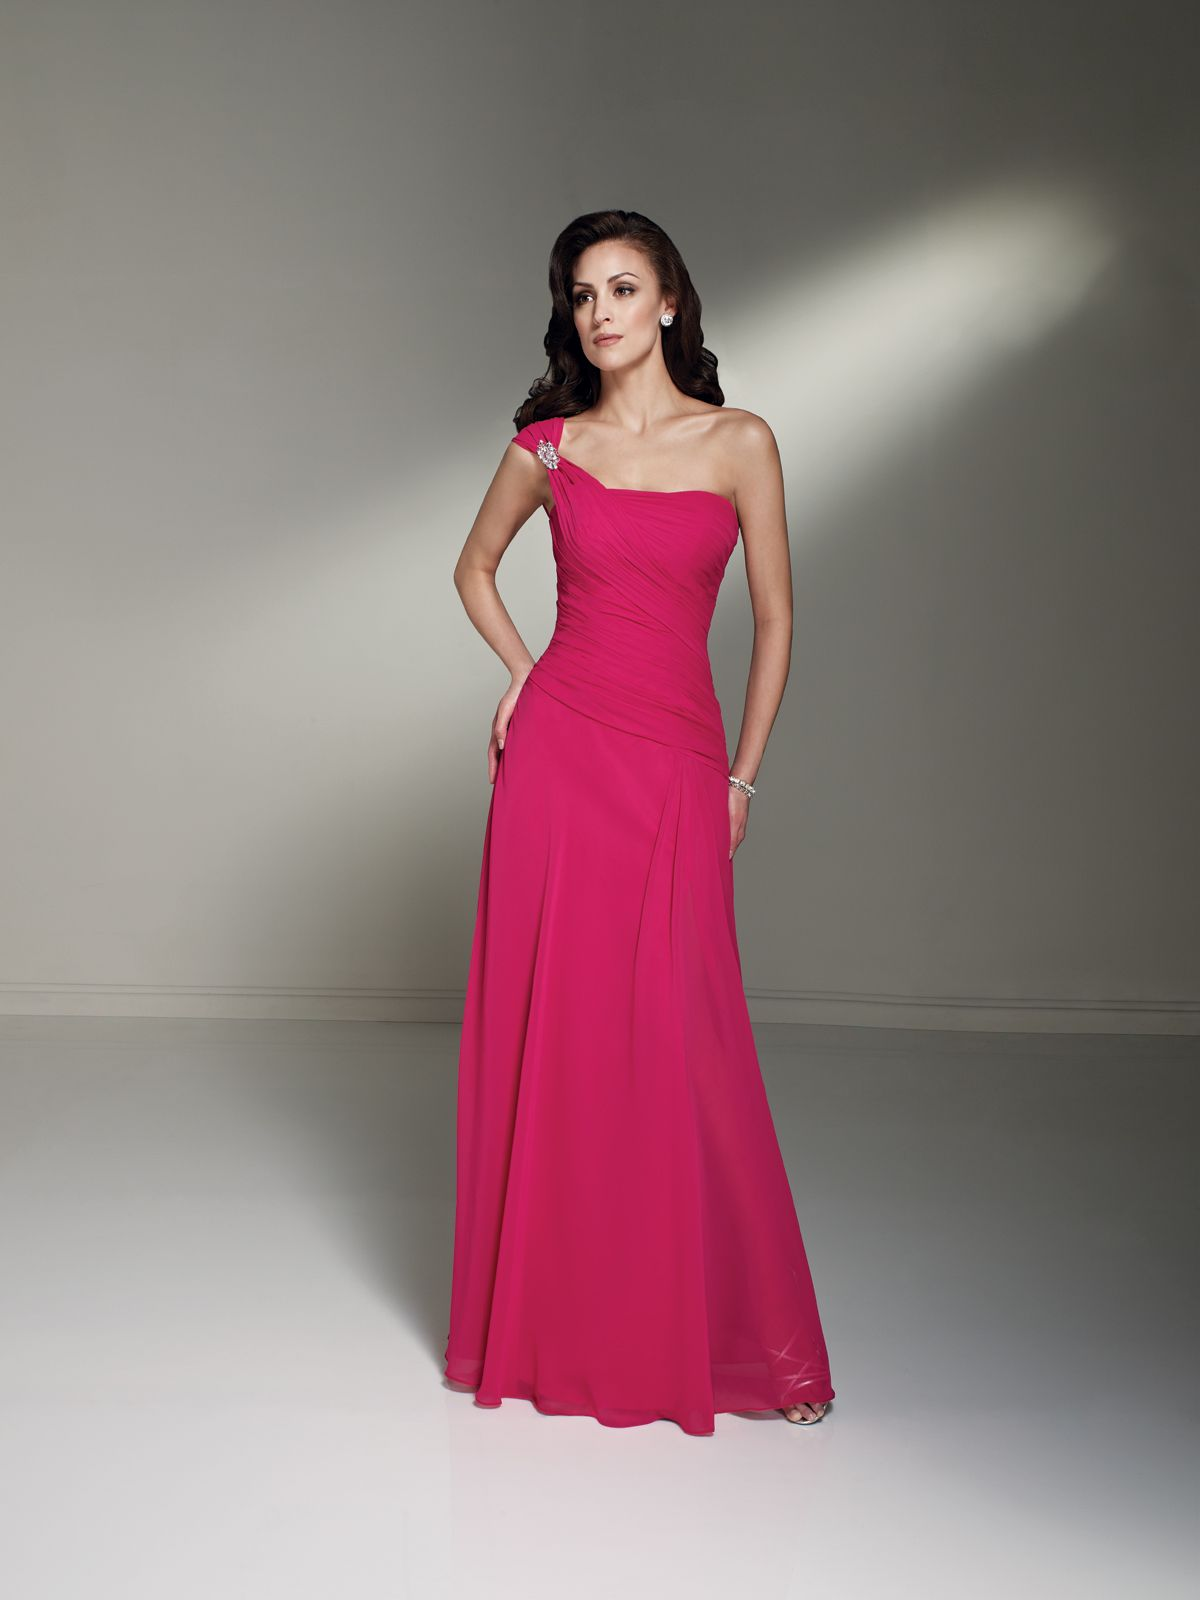 Sophia tolli turq or teal oneshoulder chiffon aline gown with